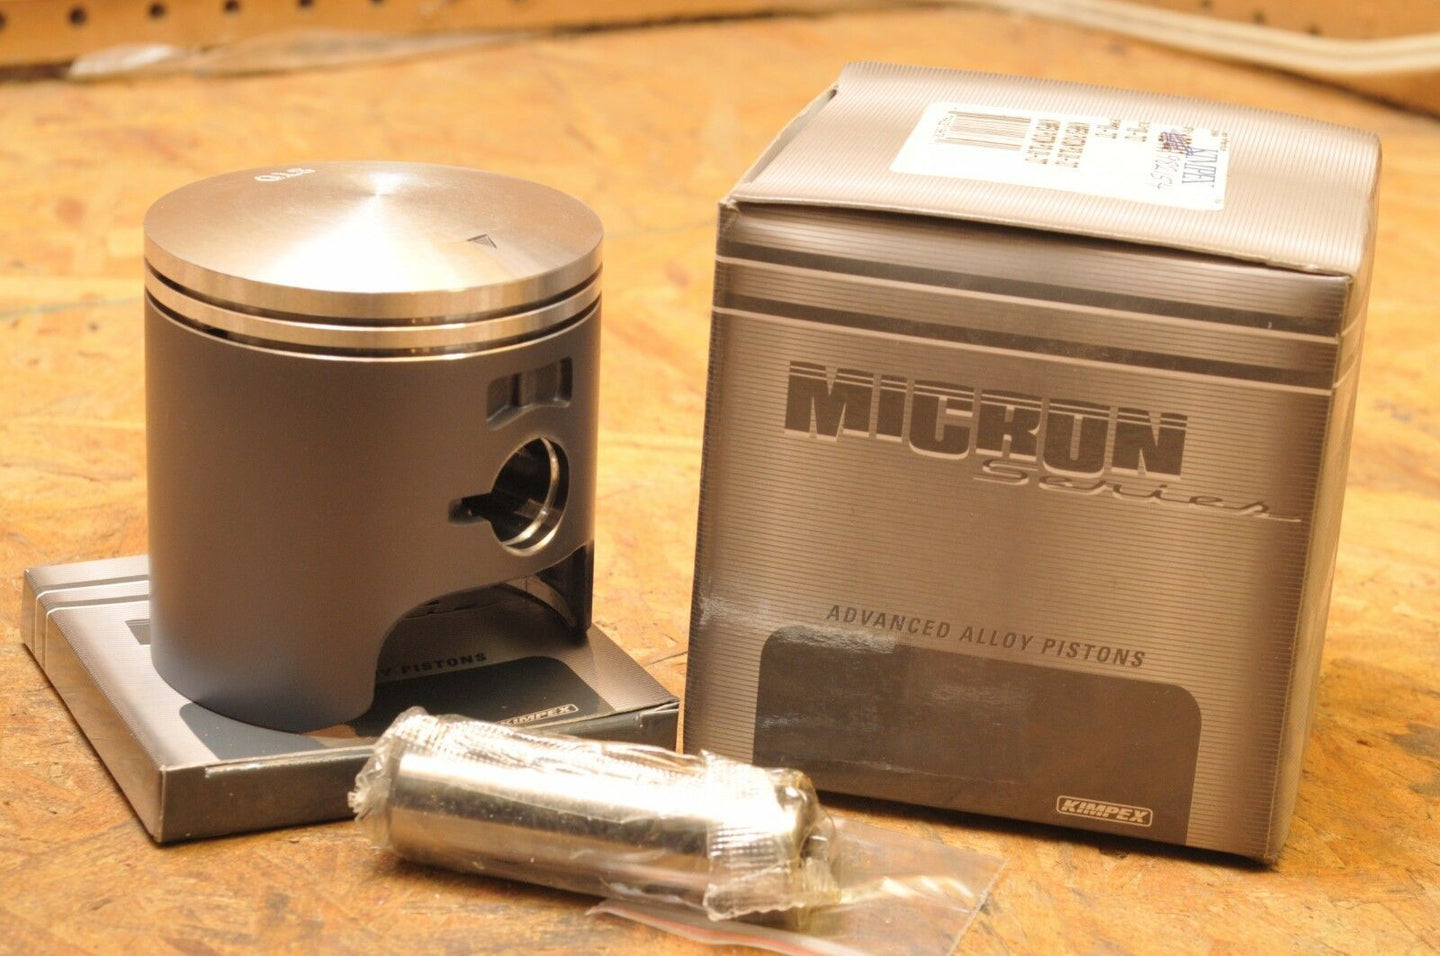 NEW NOS KIMPEX PISTON KIT 09-831M YAMAHA 700 SRX VENTURE 8DN-11631-10